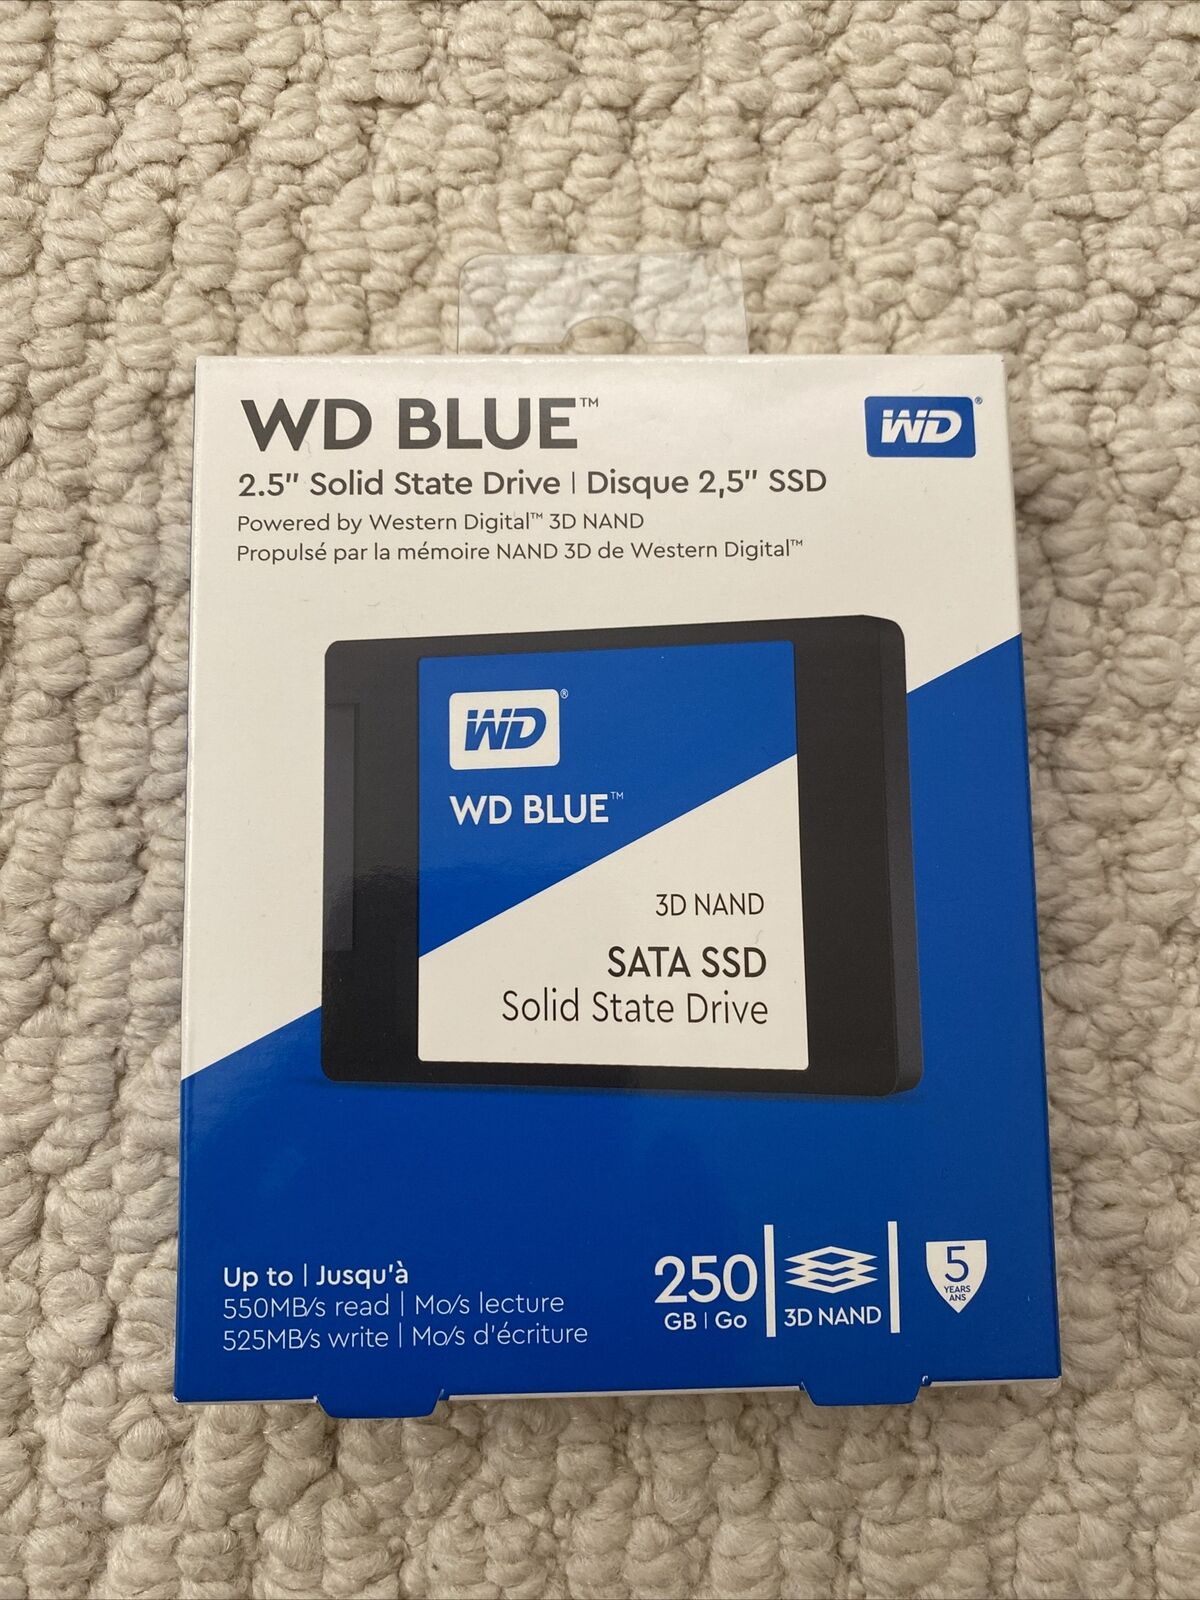 WD - Blue 250GB Internal SATA Solid State Drive 3D NAND. Buy it now for 39.99